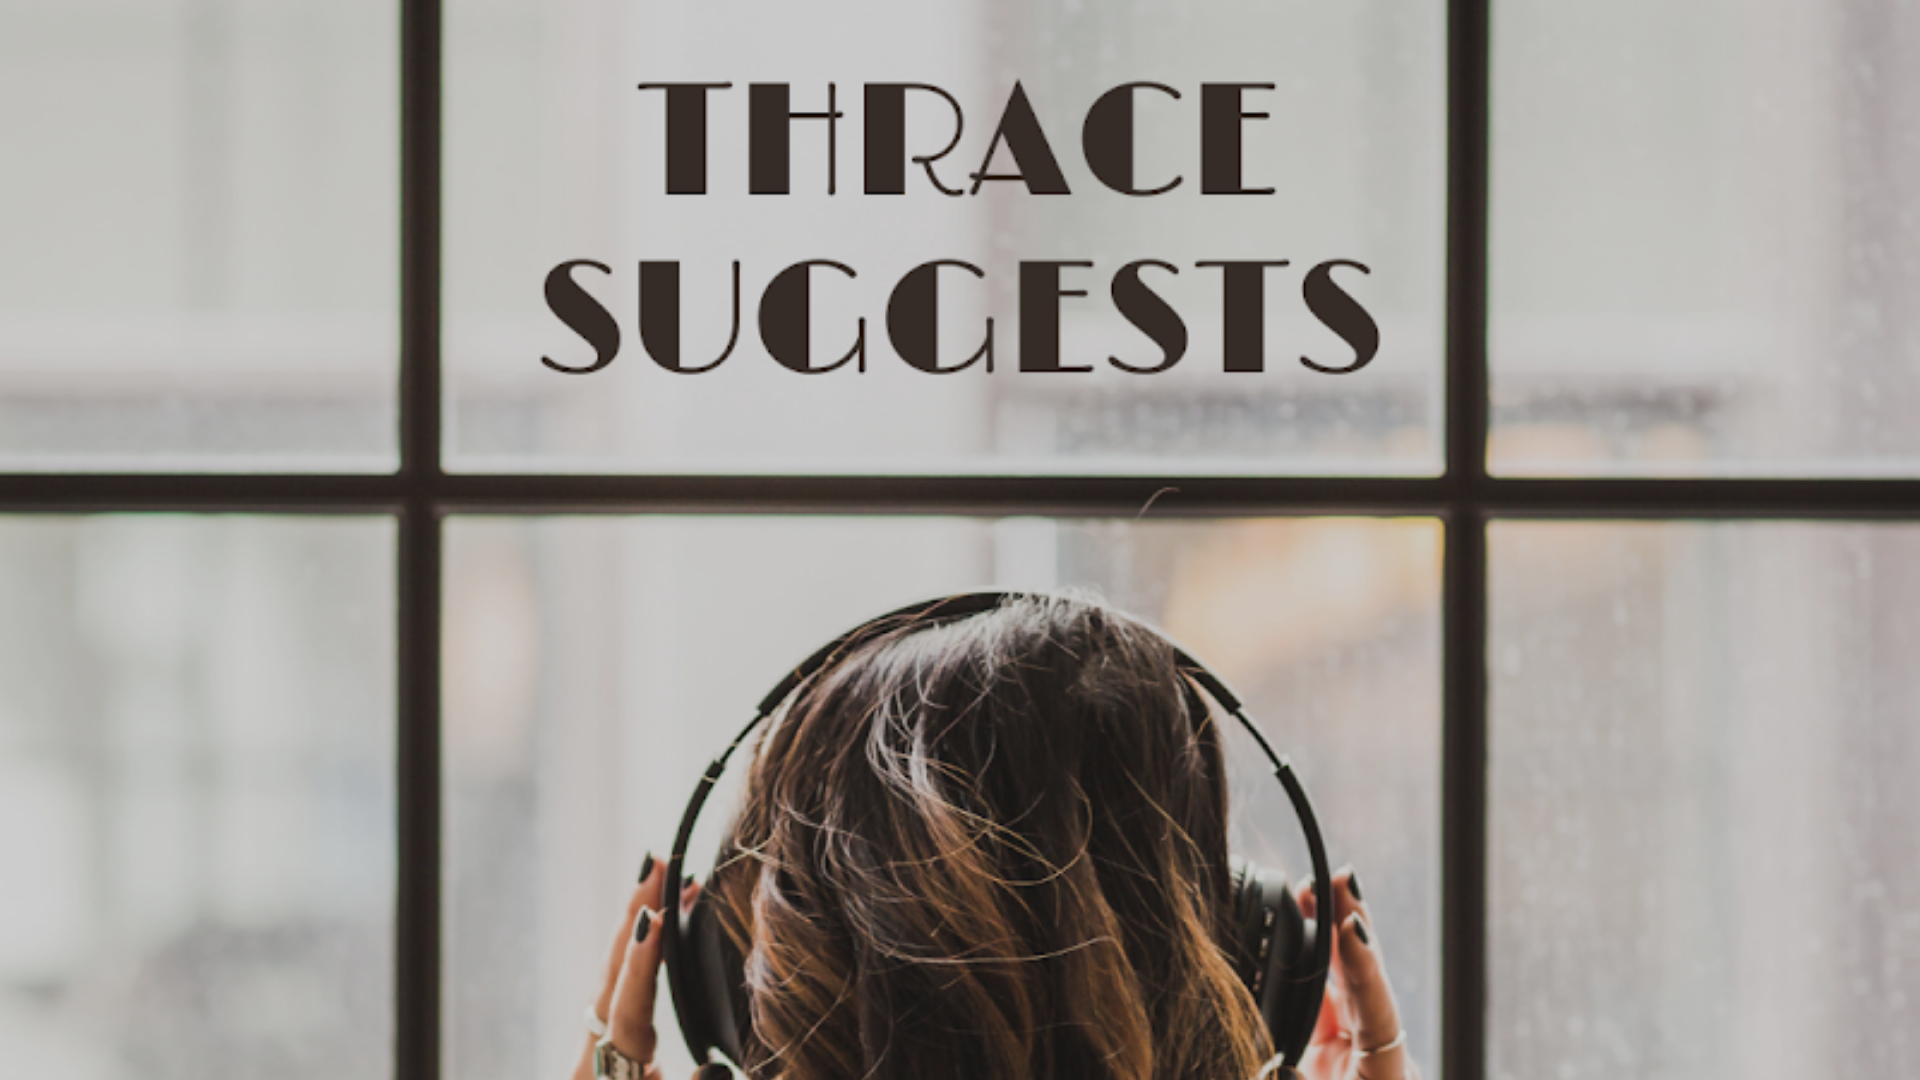 Thrace Suggests – January 2021